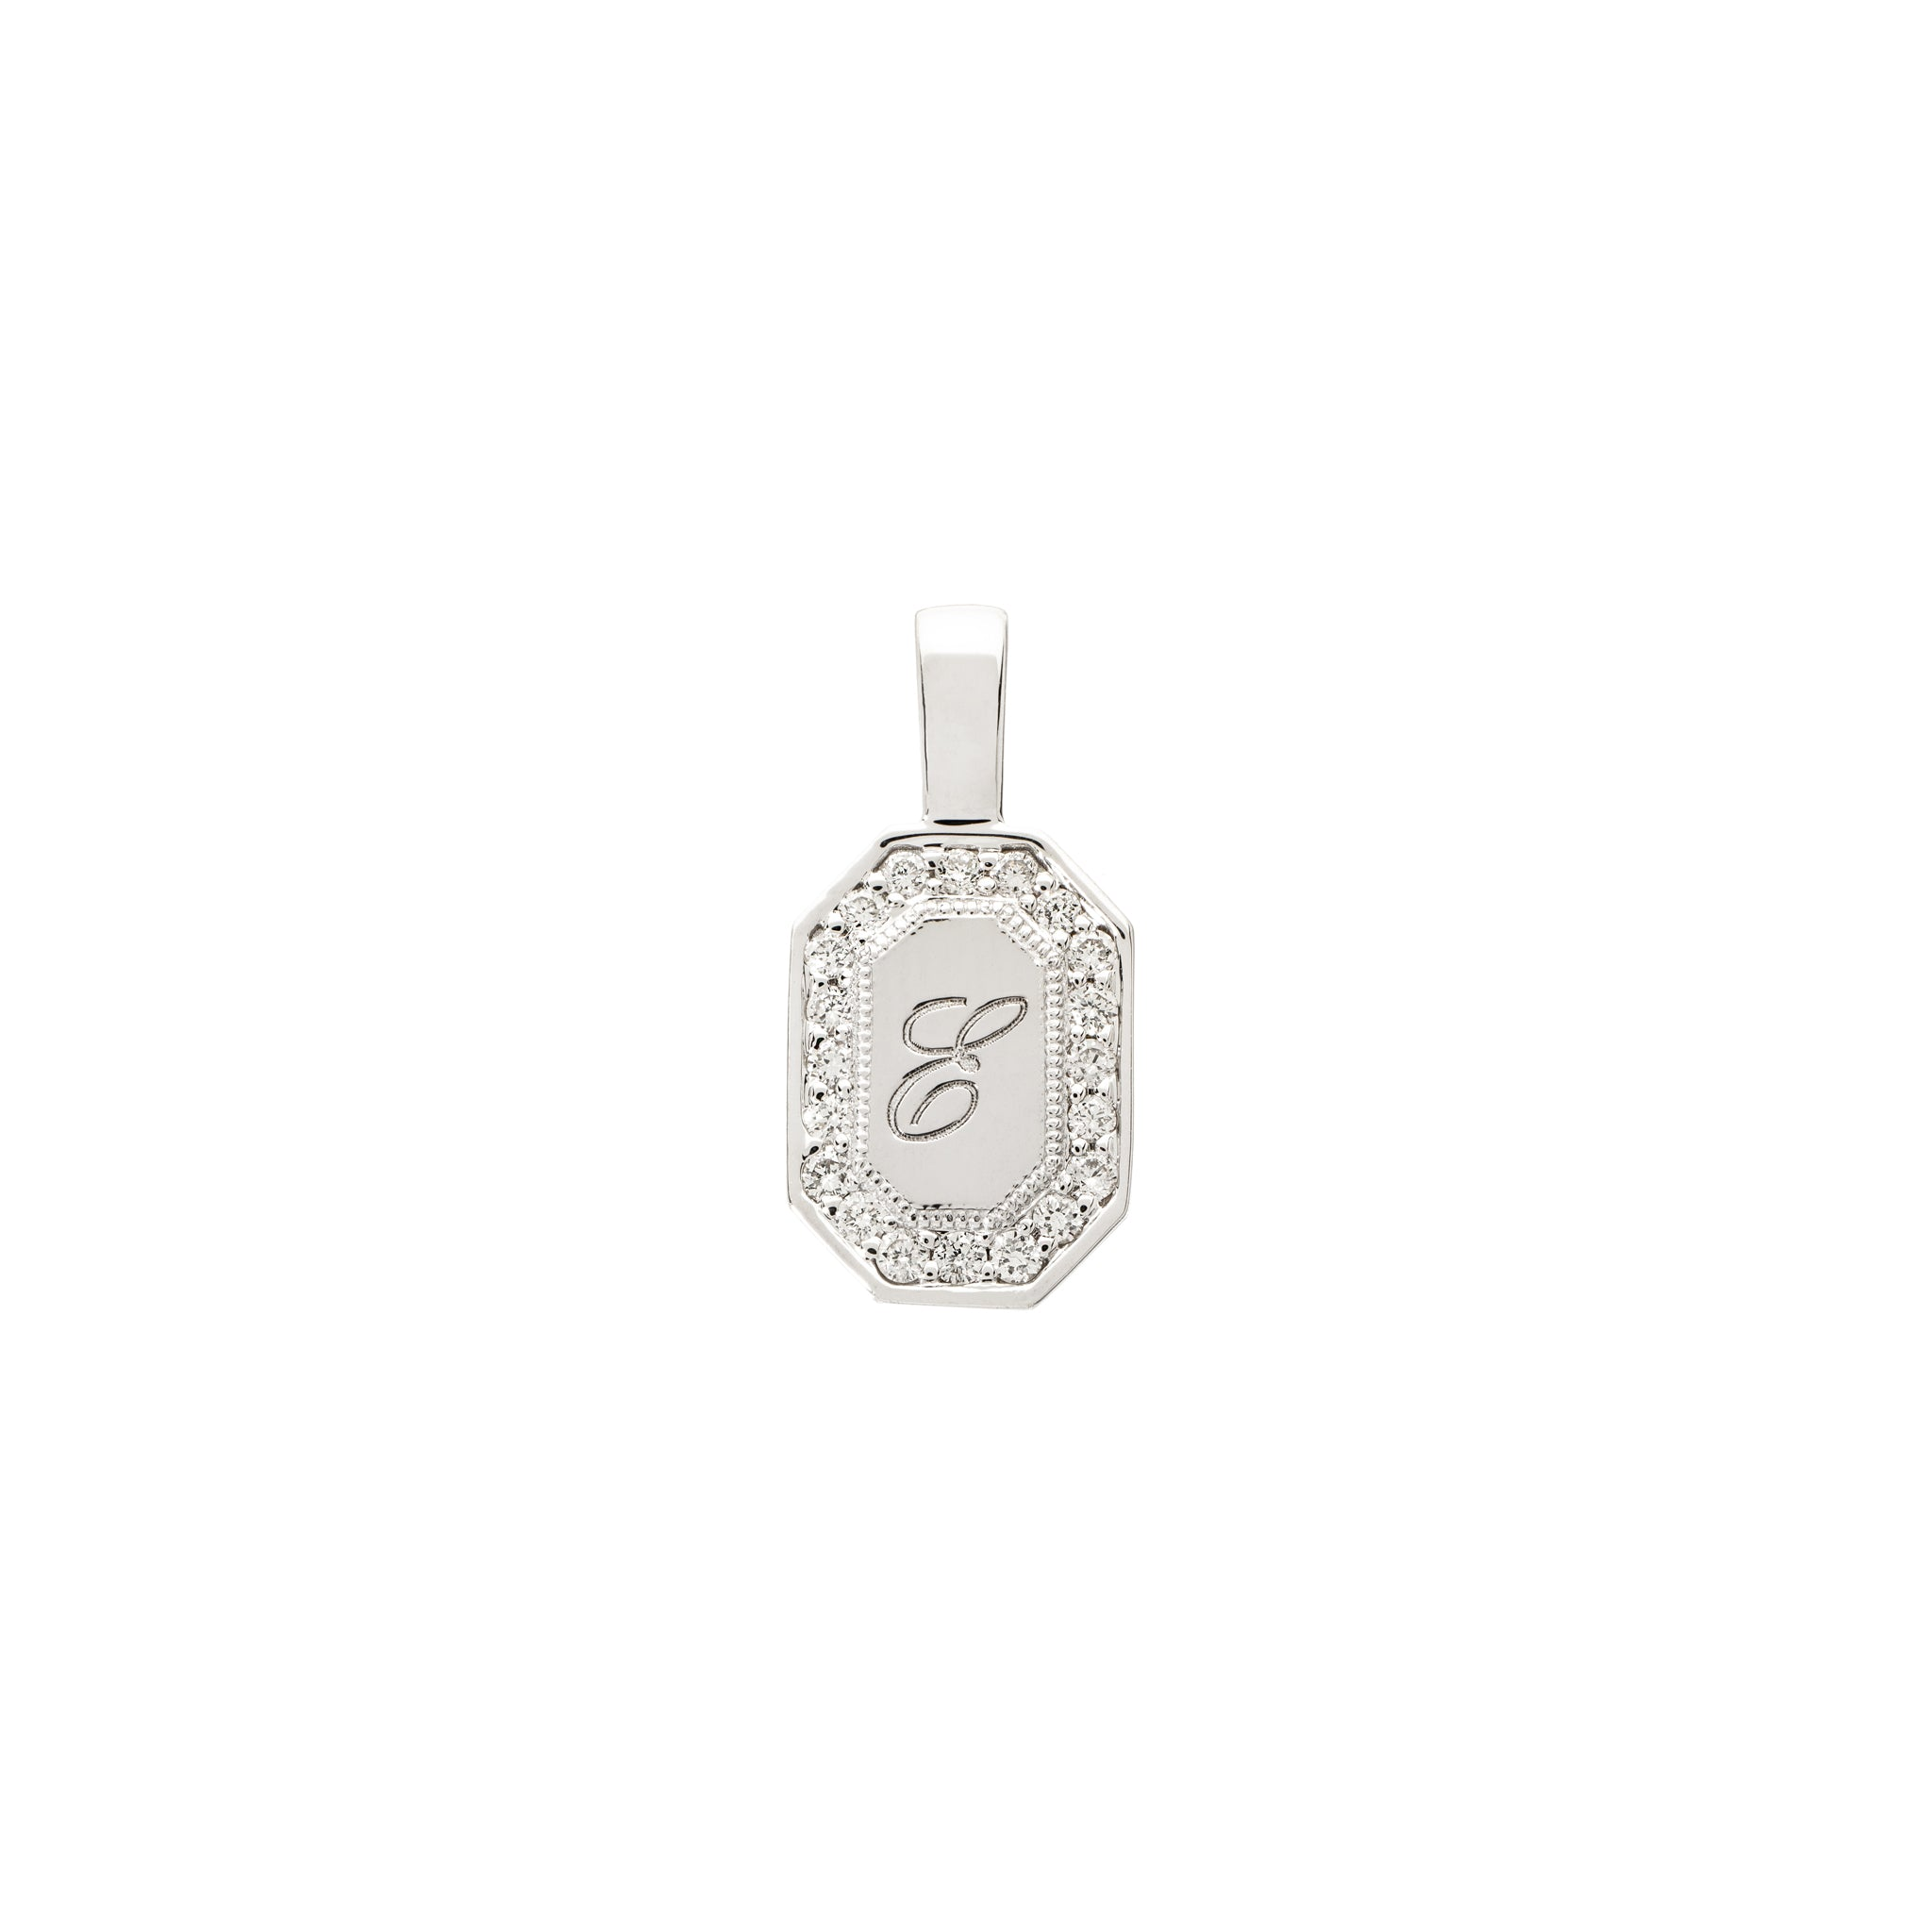 The P.S. Tag Charm Small with Diamonds